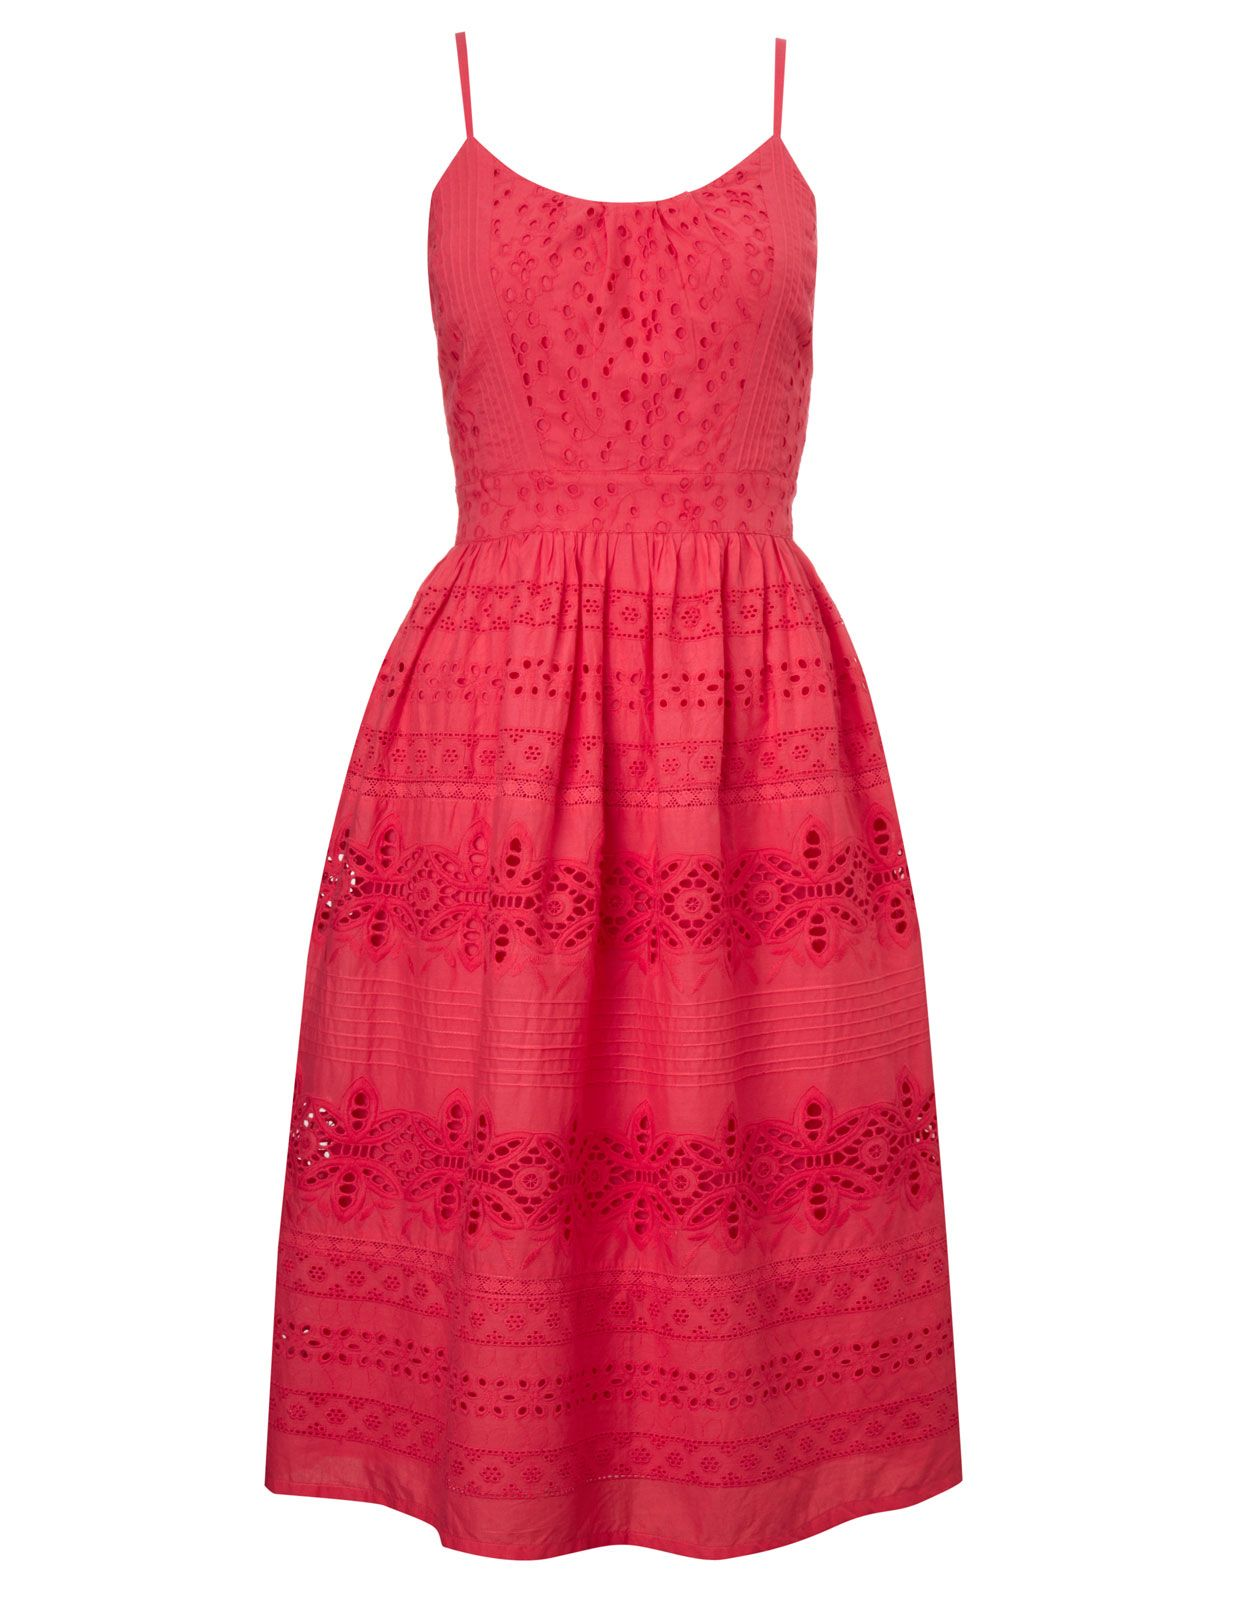 Sophia Cutwork Dress | Pink | Monsoon